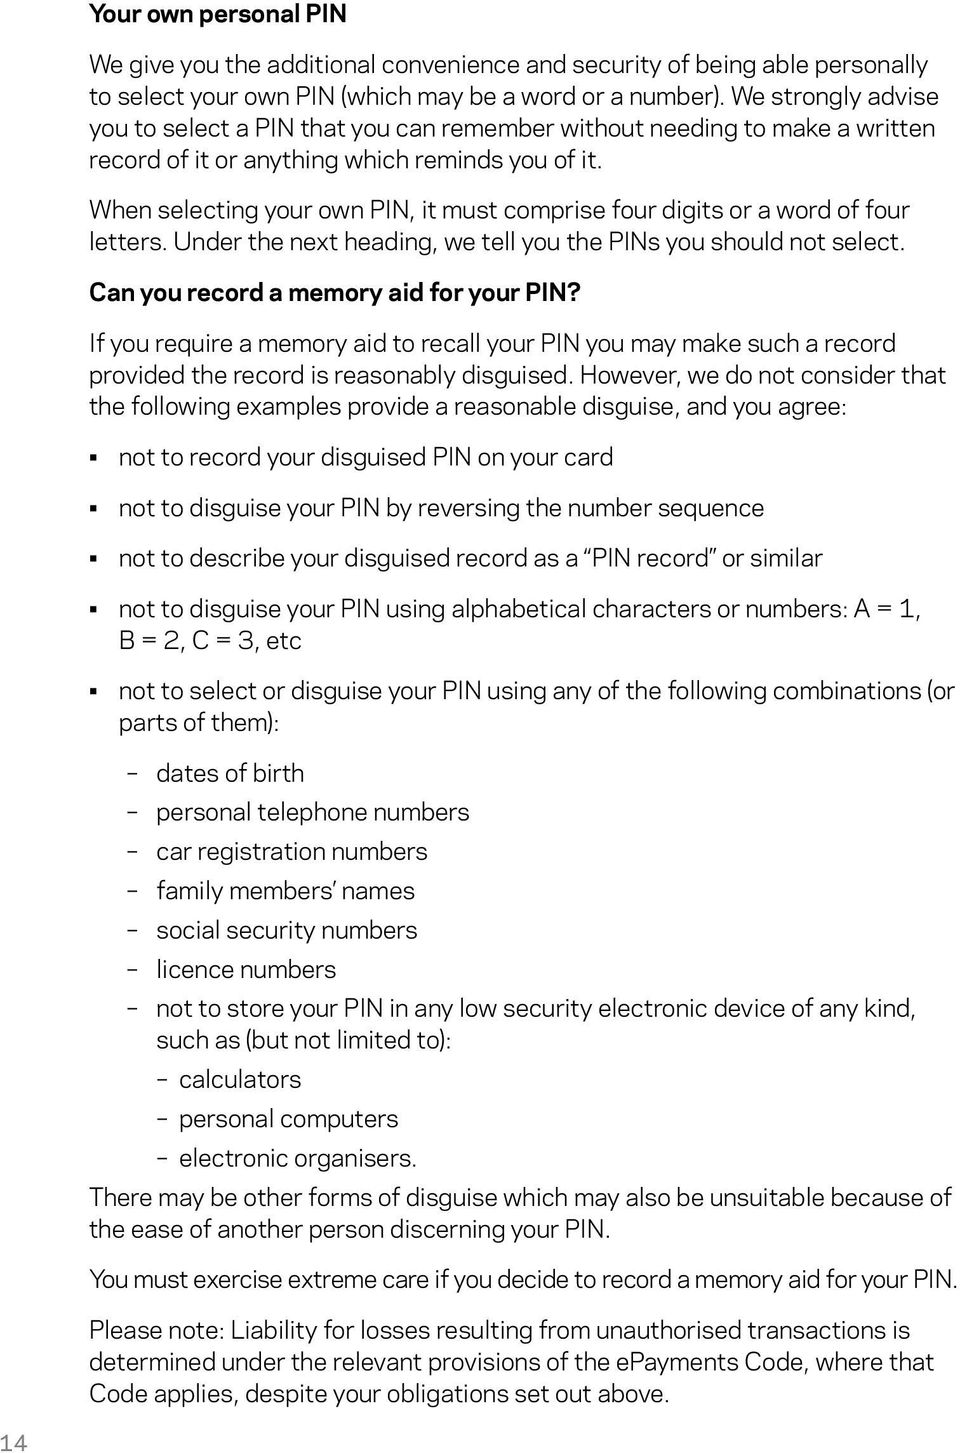 When selecting your own PIN, it must comprise four digits or a word of four letters. Under the next heading, we tell you the PINs you should not select. Can you record a memory aid for your PIN?